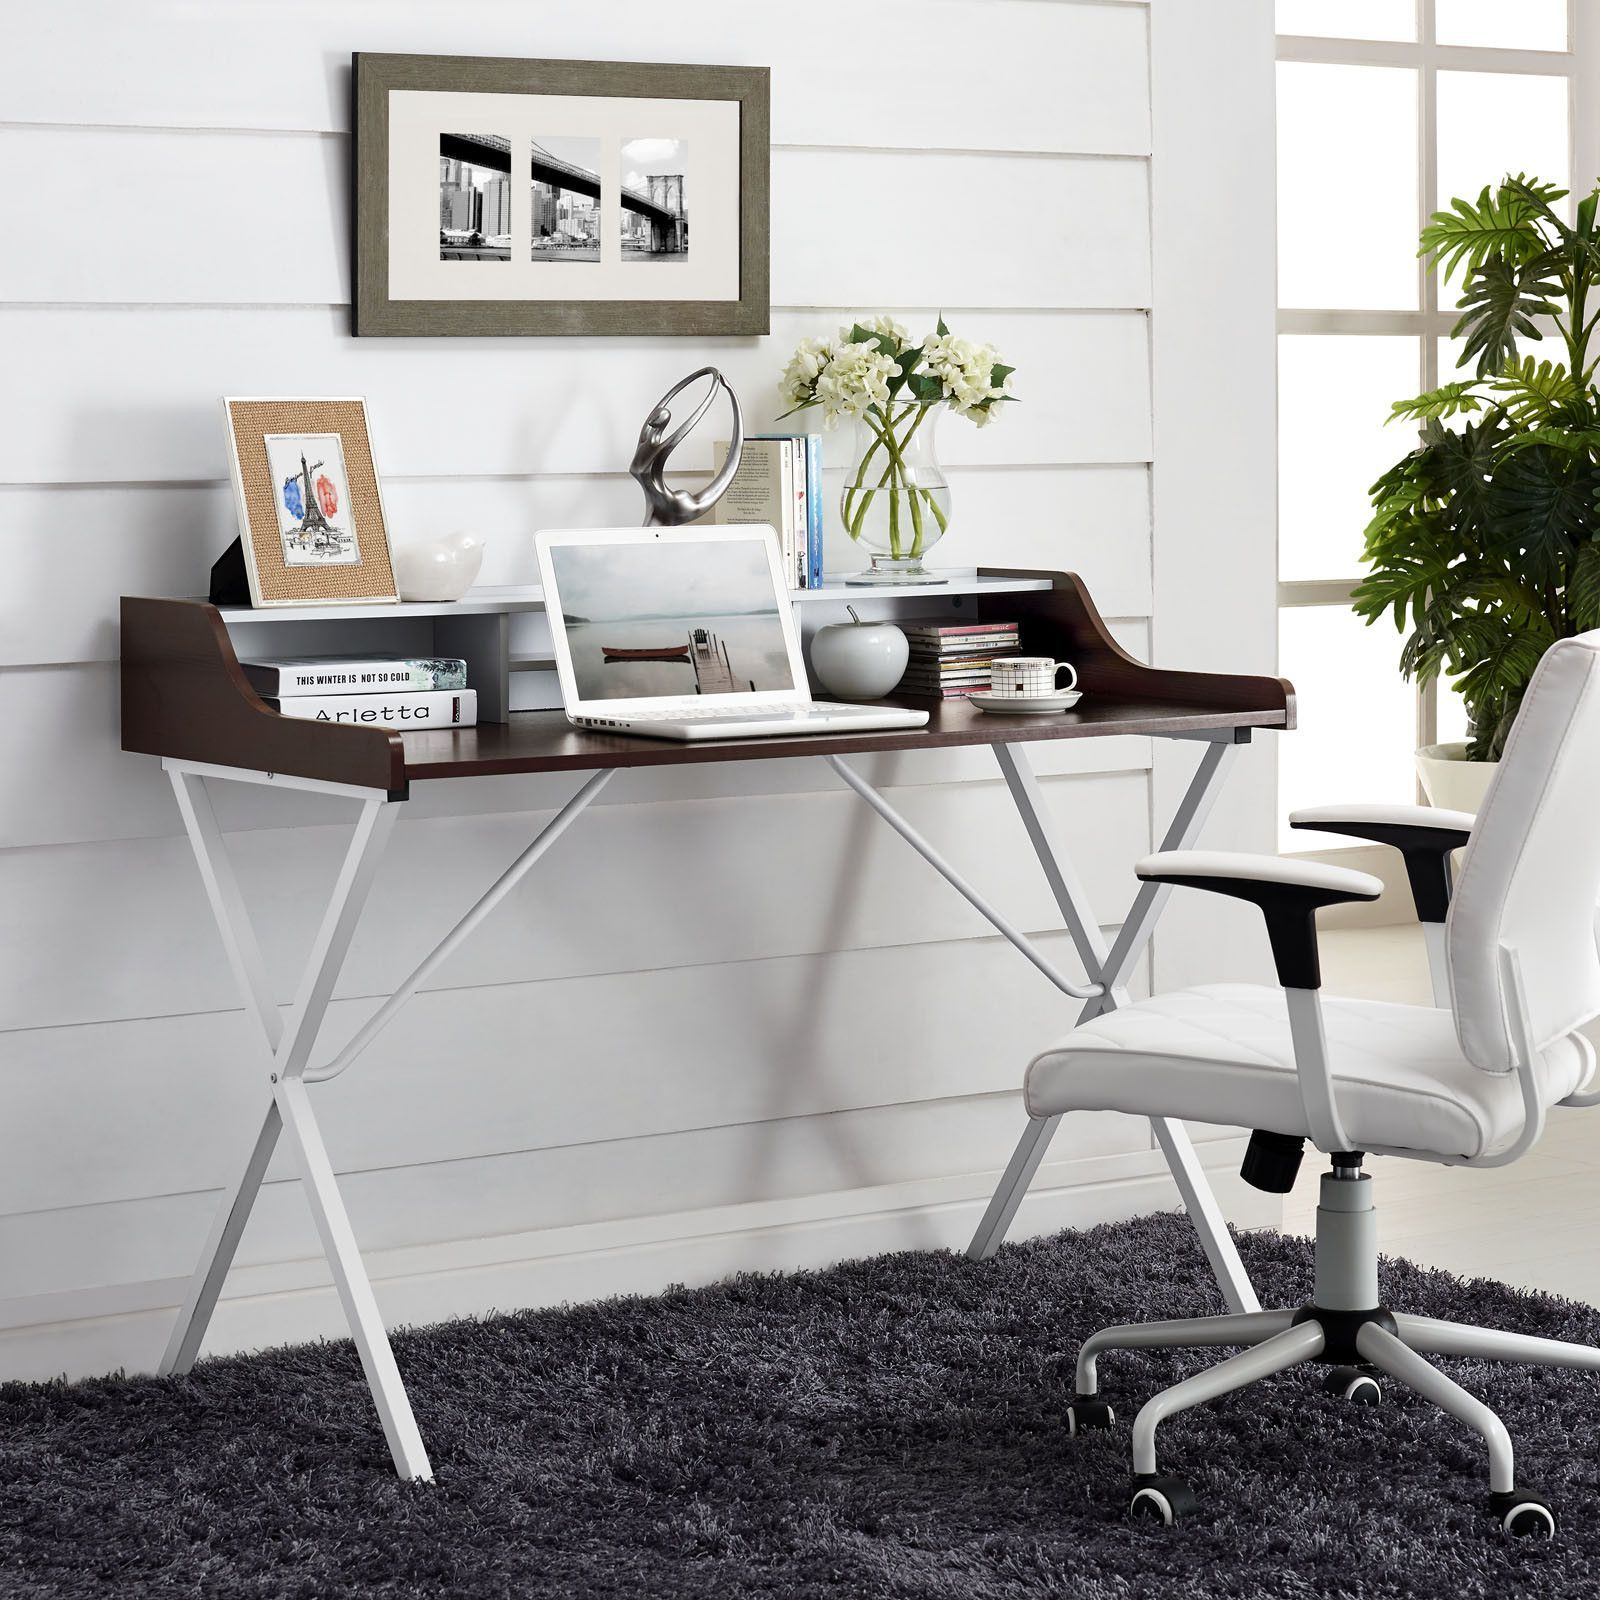 Zen office furniture Zenpro Office Zen Desk Oak Emfurn Pinterest Zen Office Desk Bedroom Pinterest Desk Home Office Design And